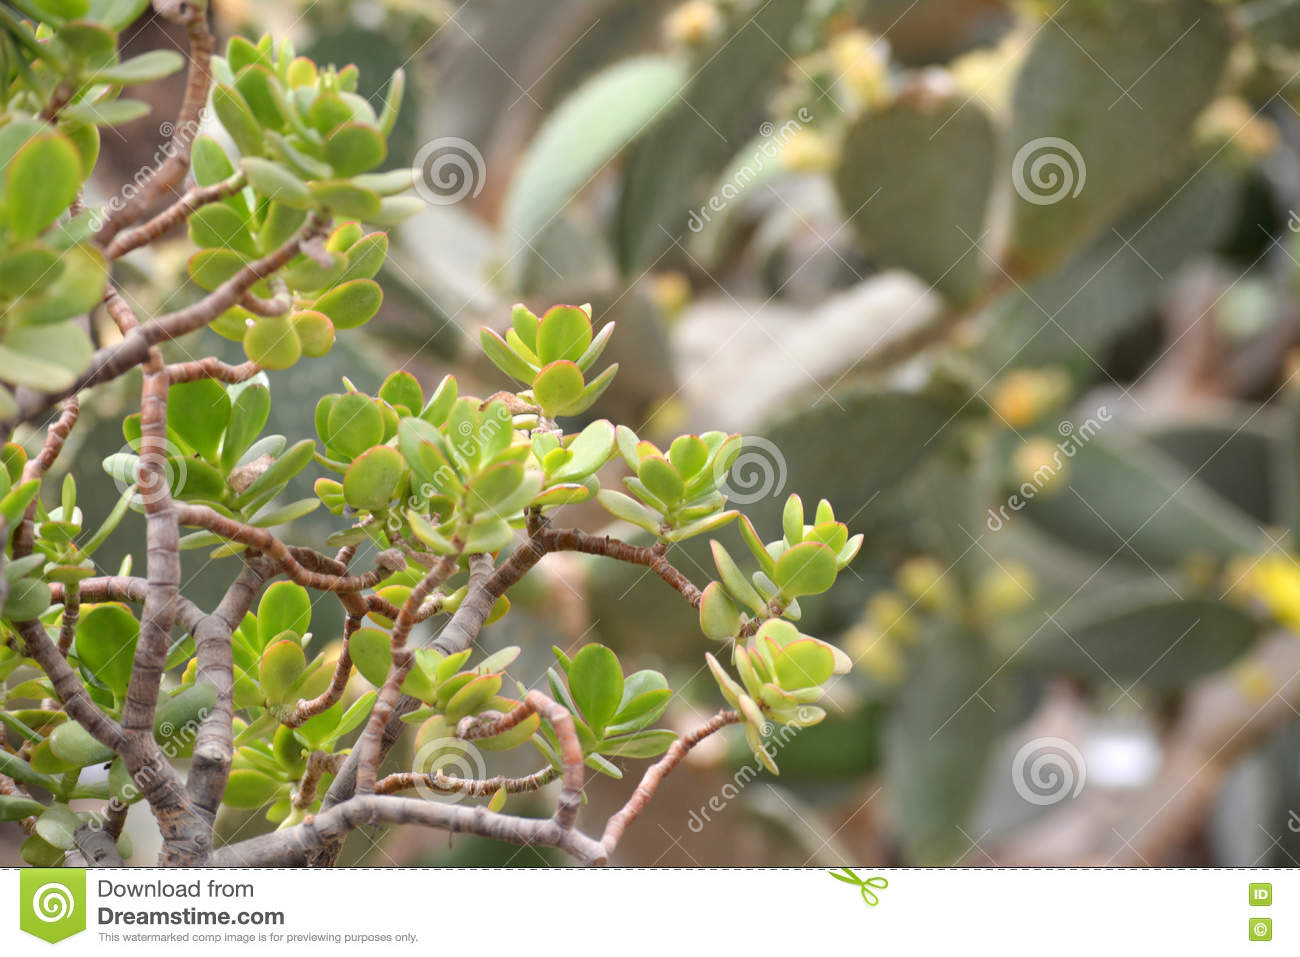 Download Green Cactus plant closeup stock photo. Image of bright - 77163182